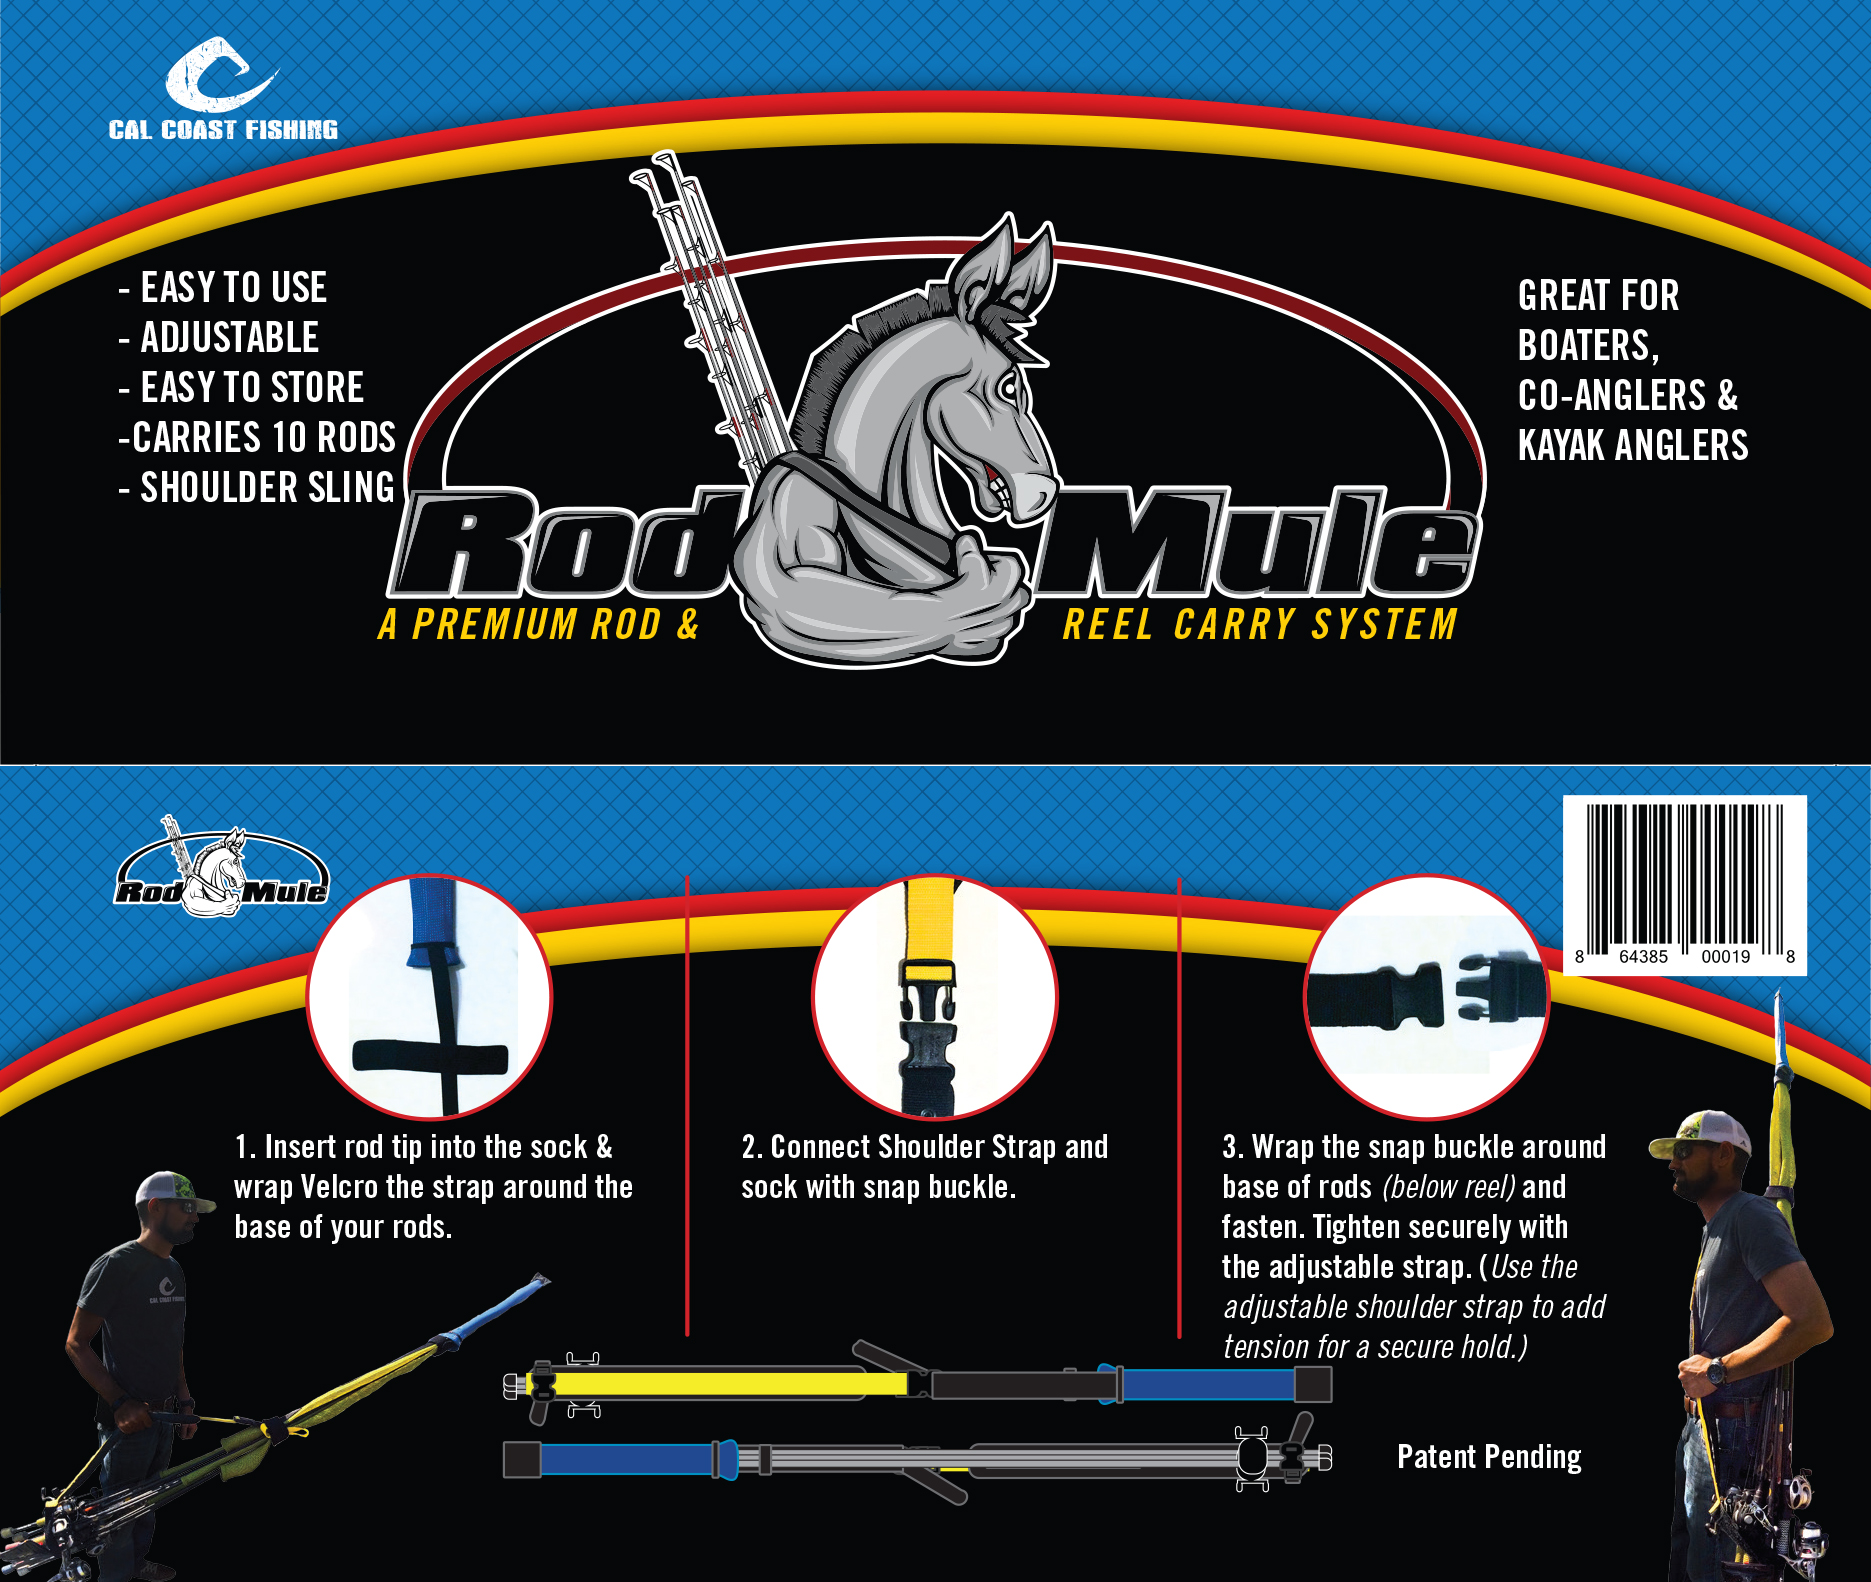 Cal Coast Fishing's Rod Mule